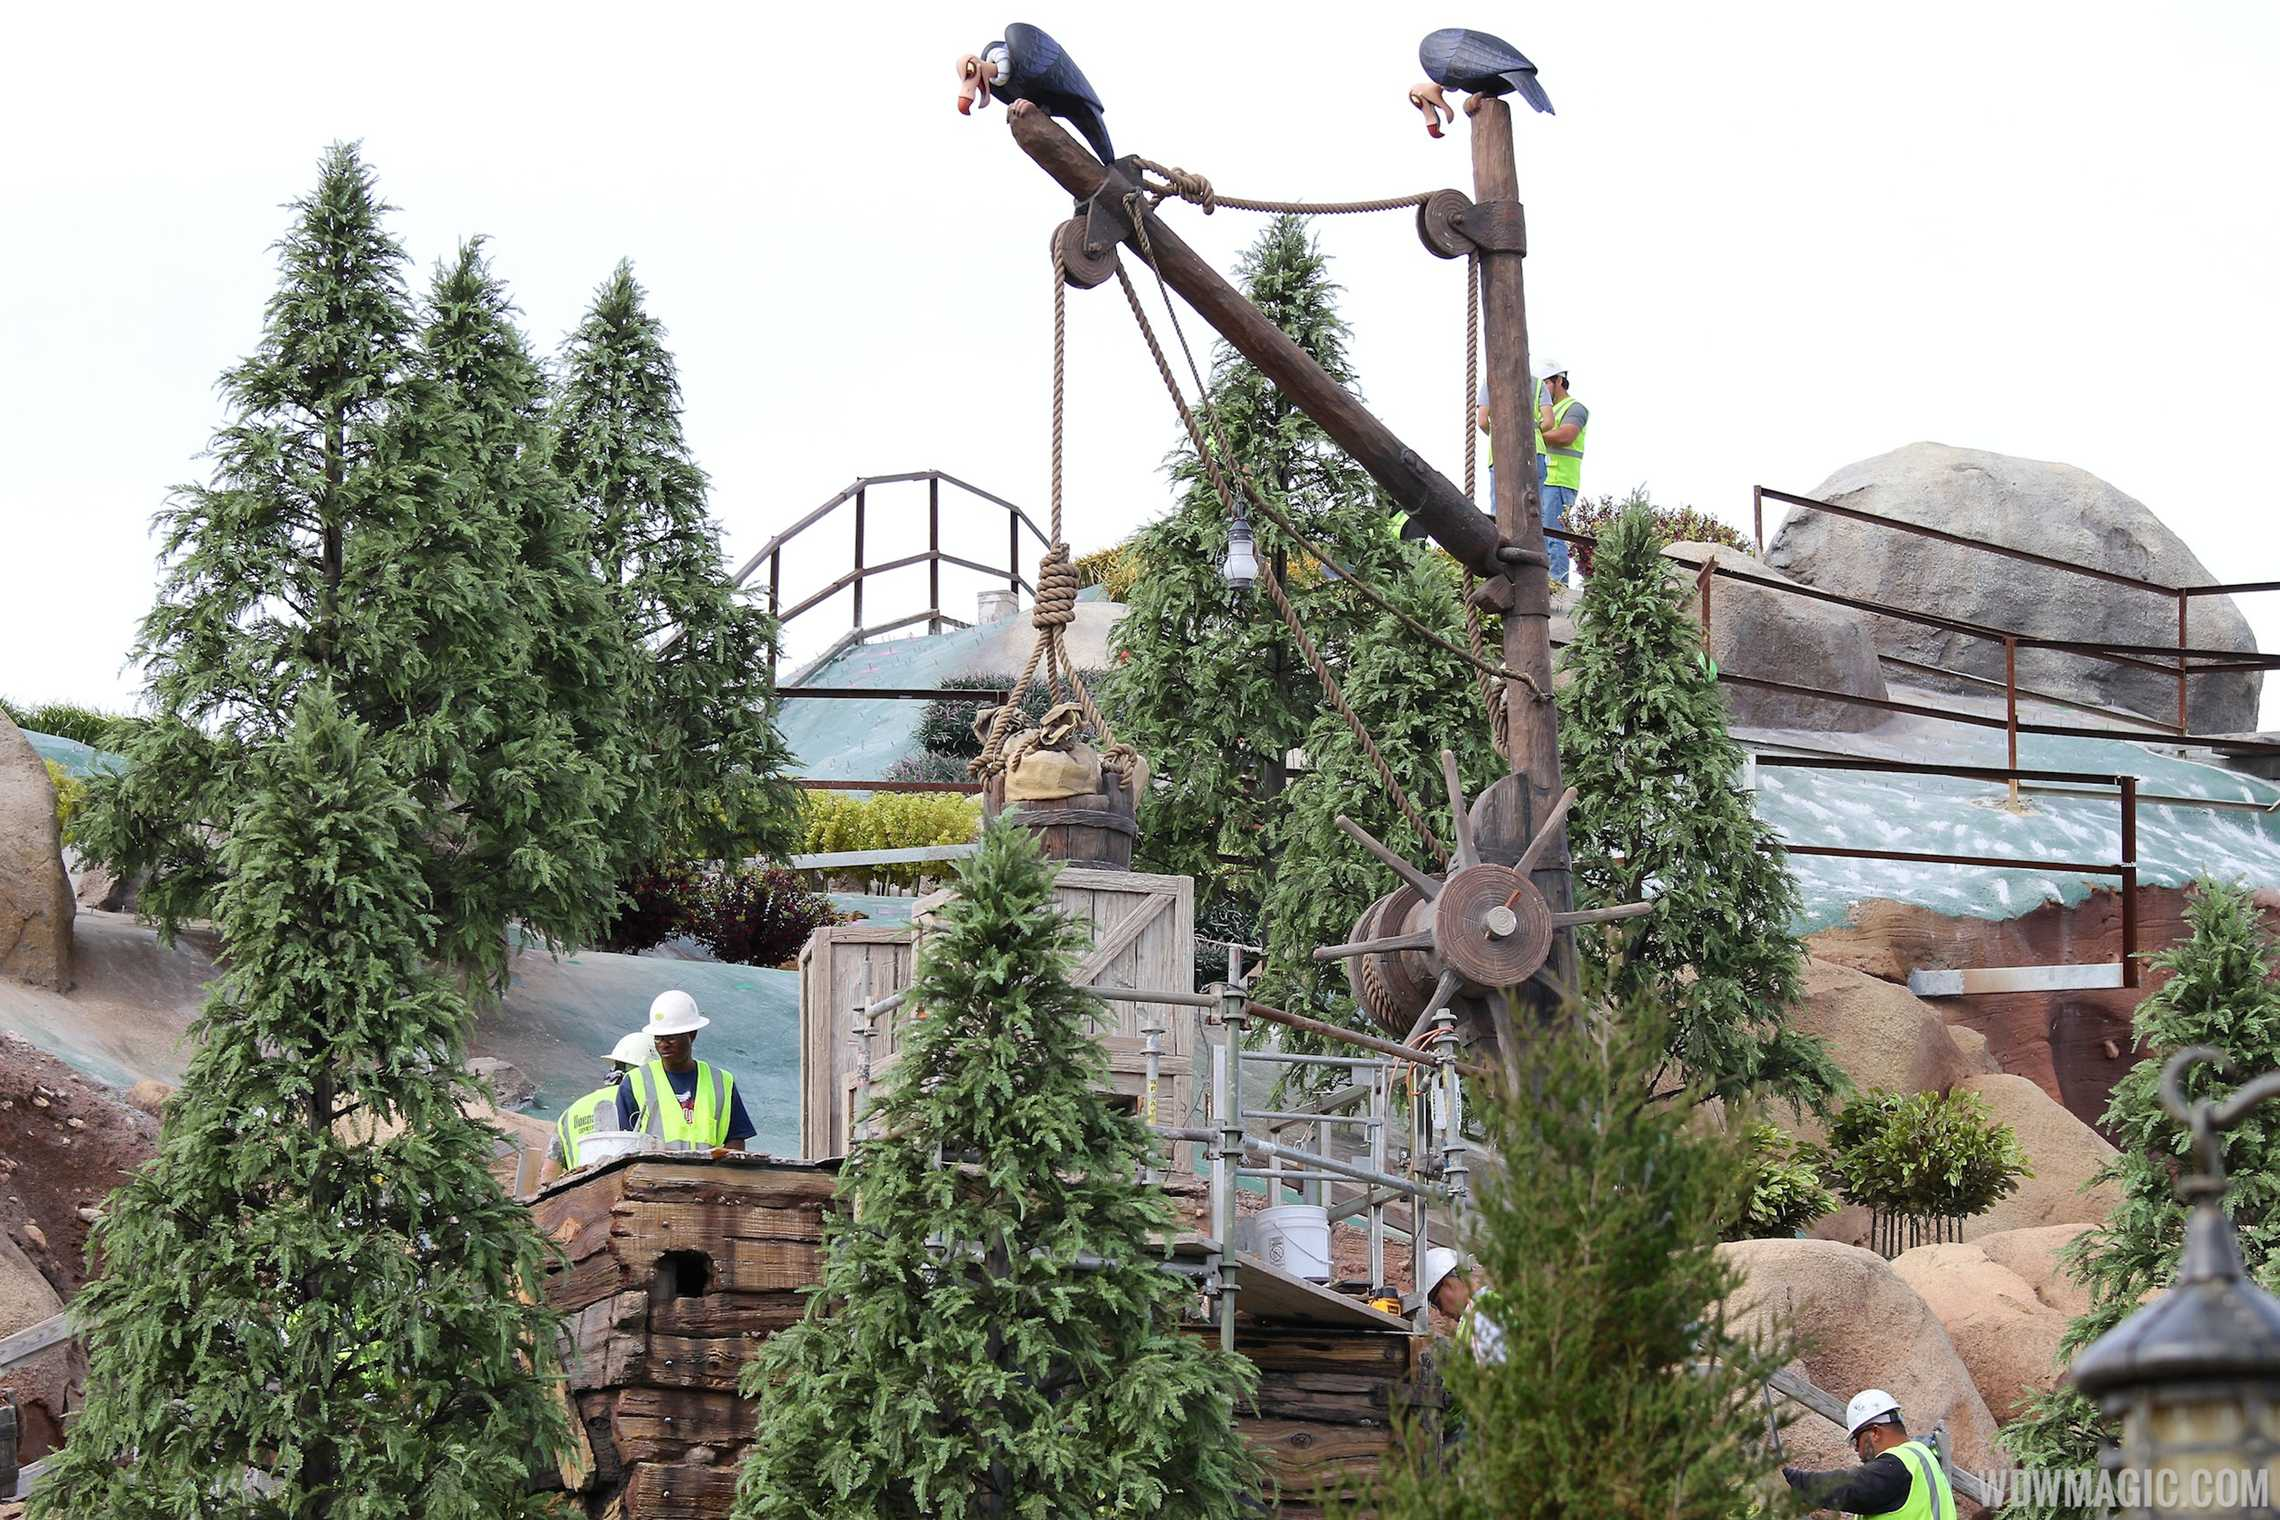 Crews working on landscaping at the Seven Dwarfs Mine Train coaster